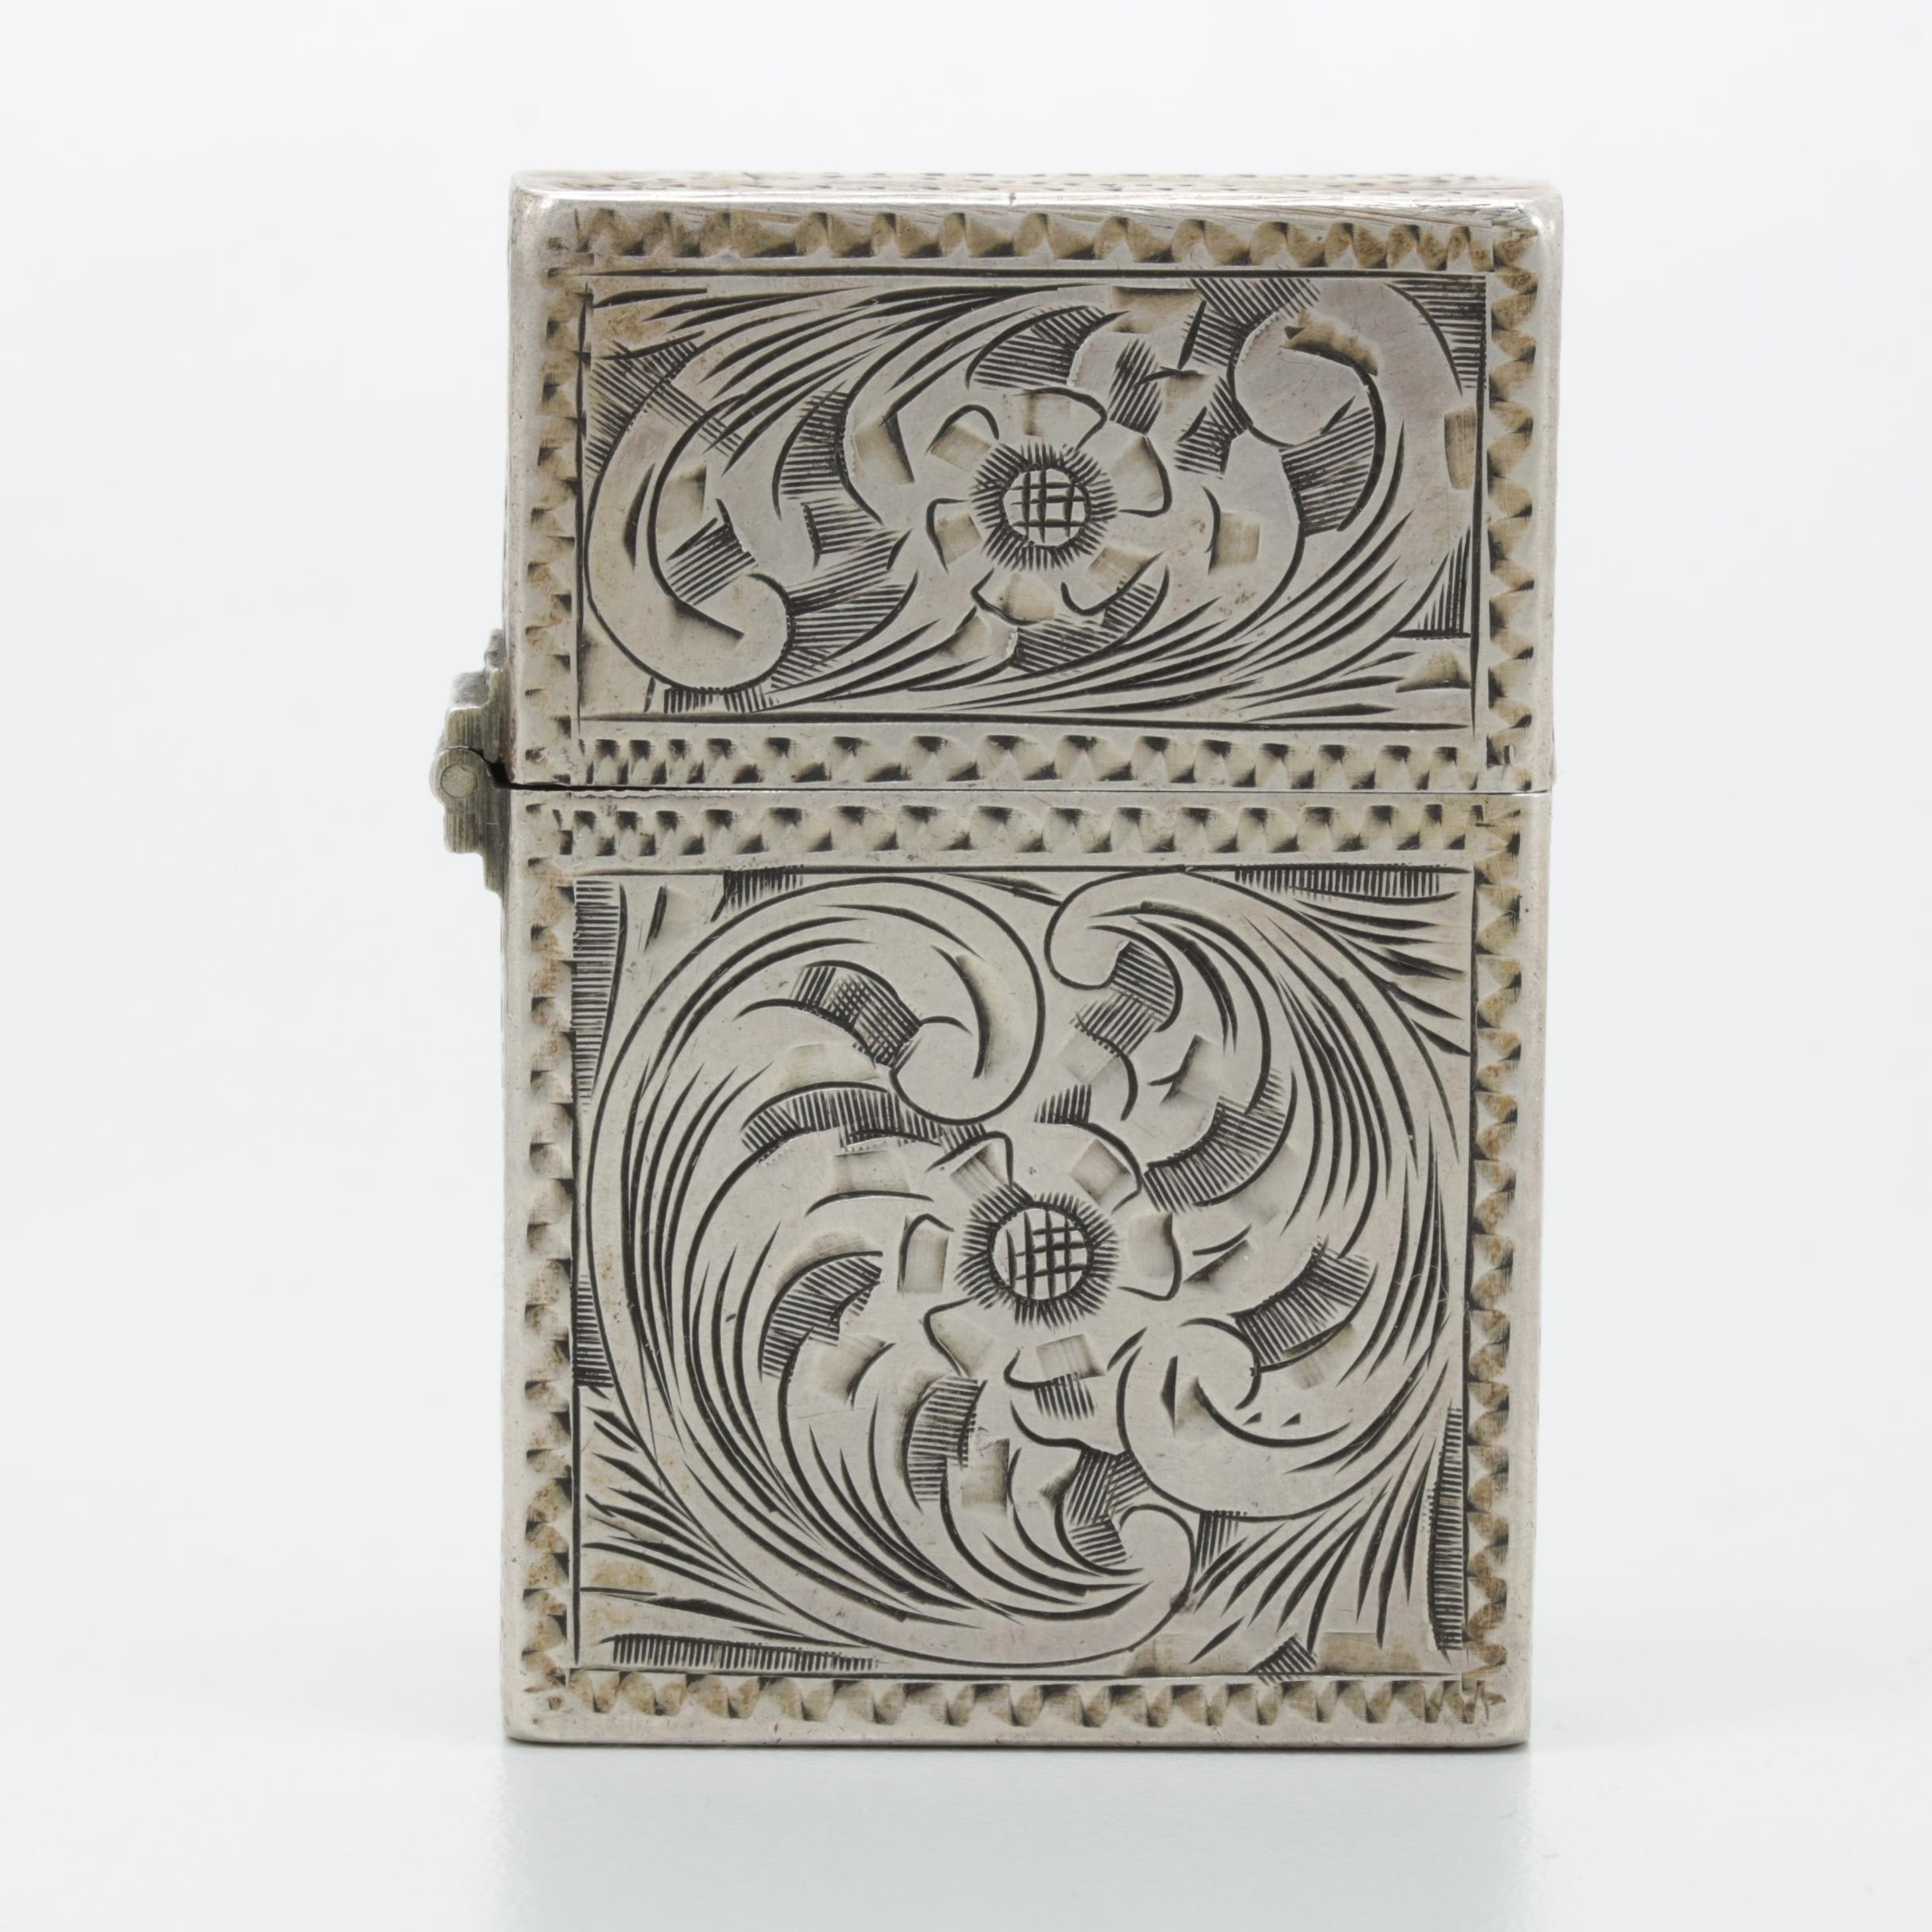 800 Silver Engraved Lighter